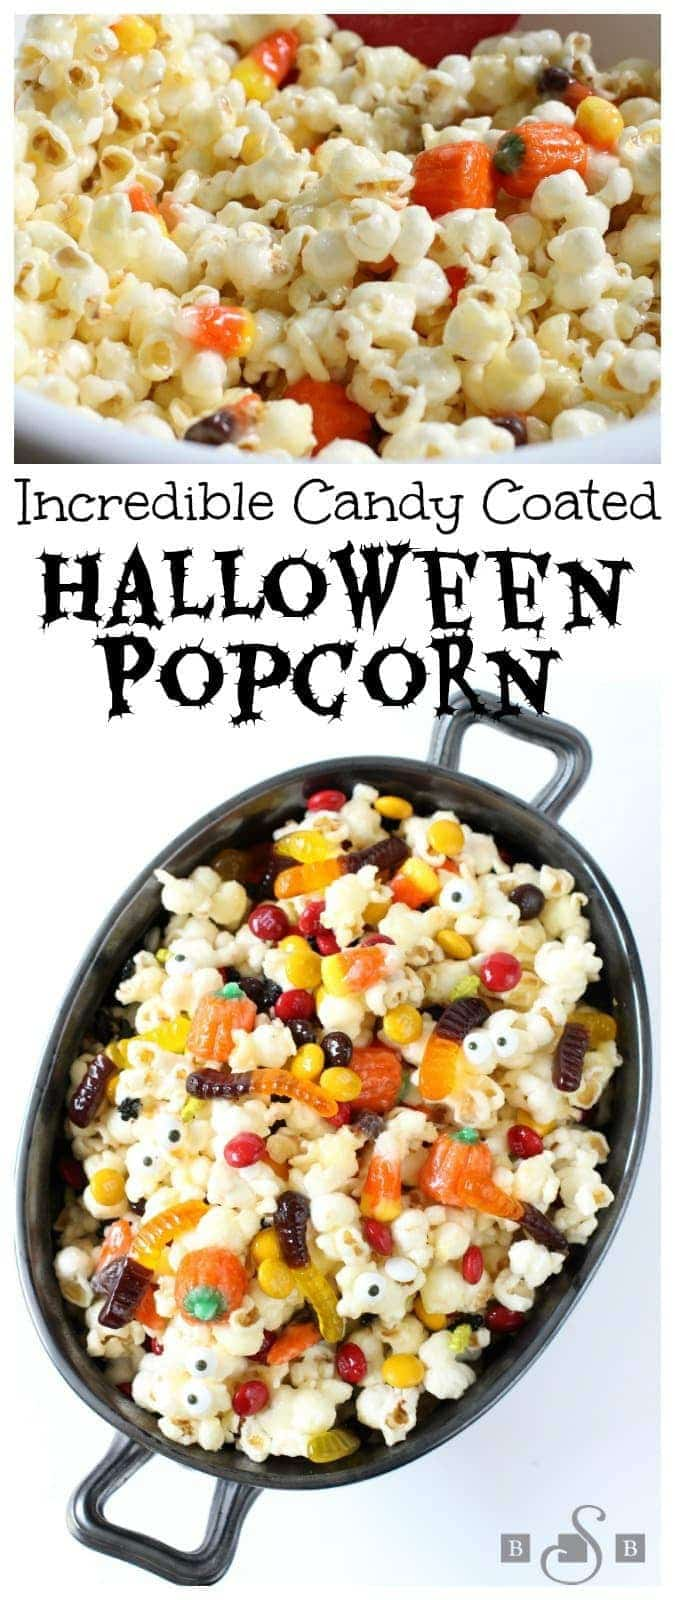 Halloween Popcorn made with a sweet, buttery candy coating then tossed with Halloween candy. It's the perfect festive treat!